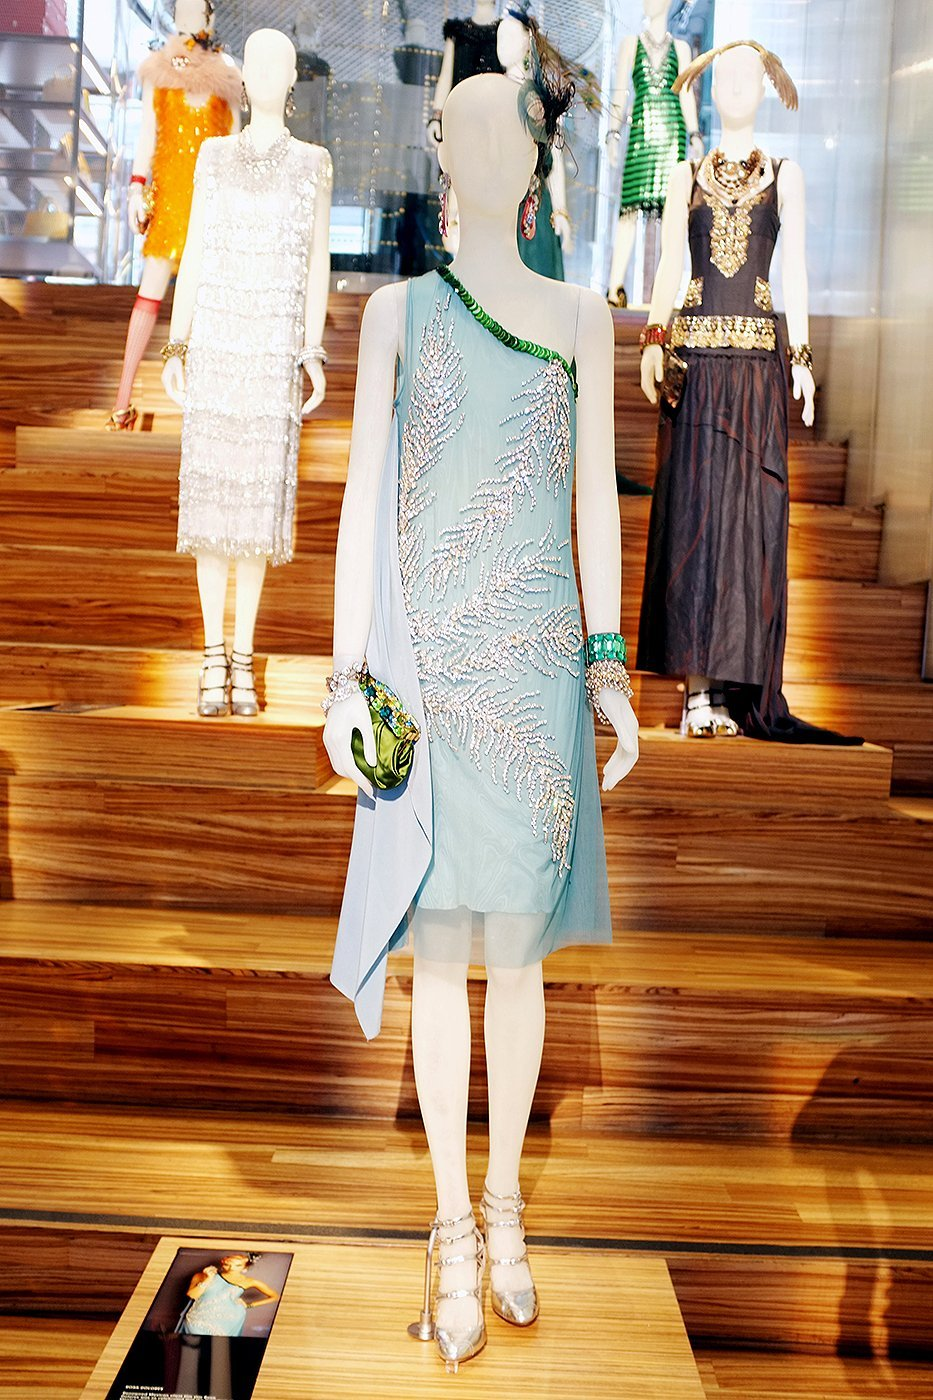 The Great Gatsby costume by Catherine Martin & Miuccia Prada